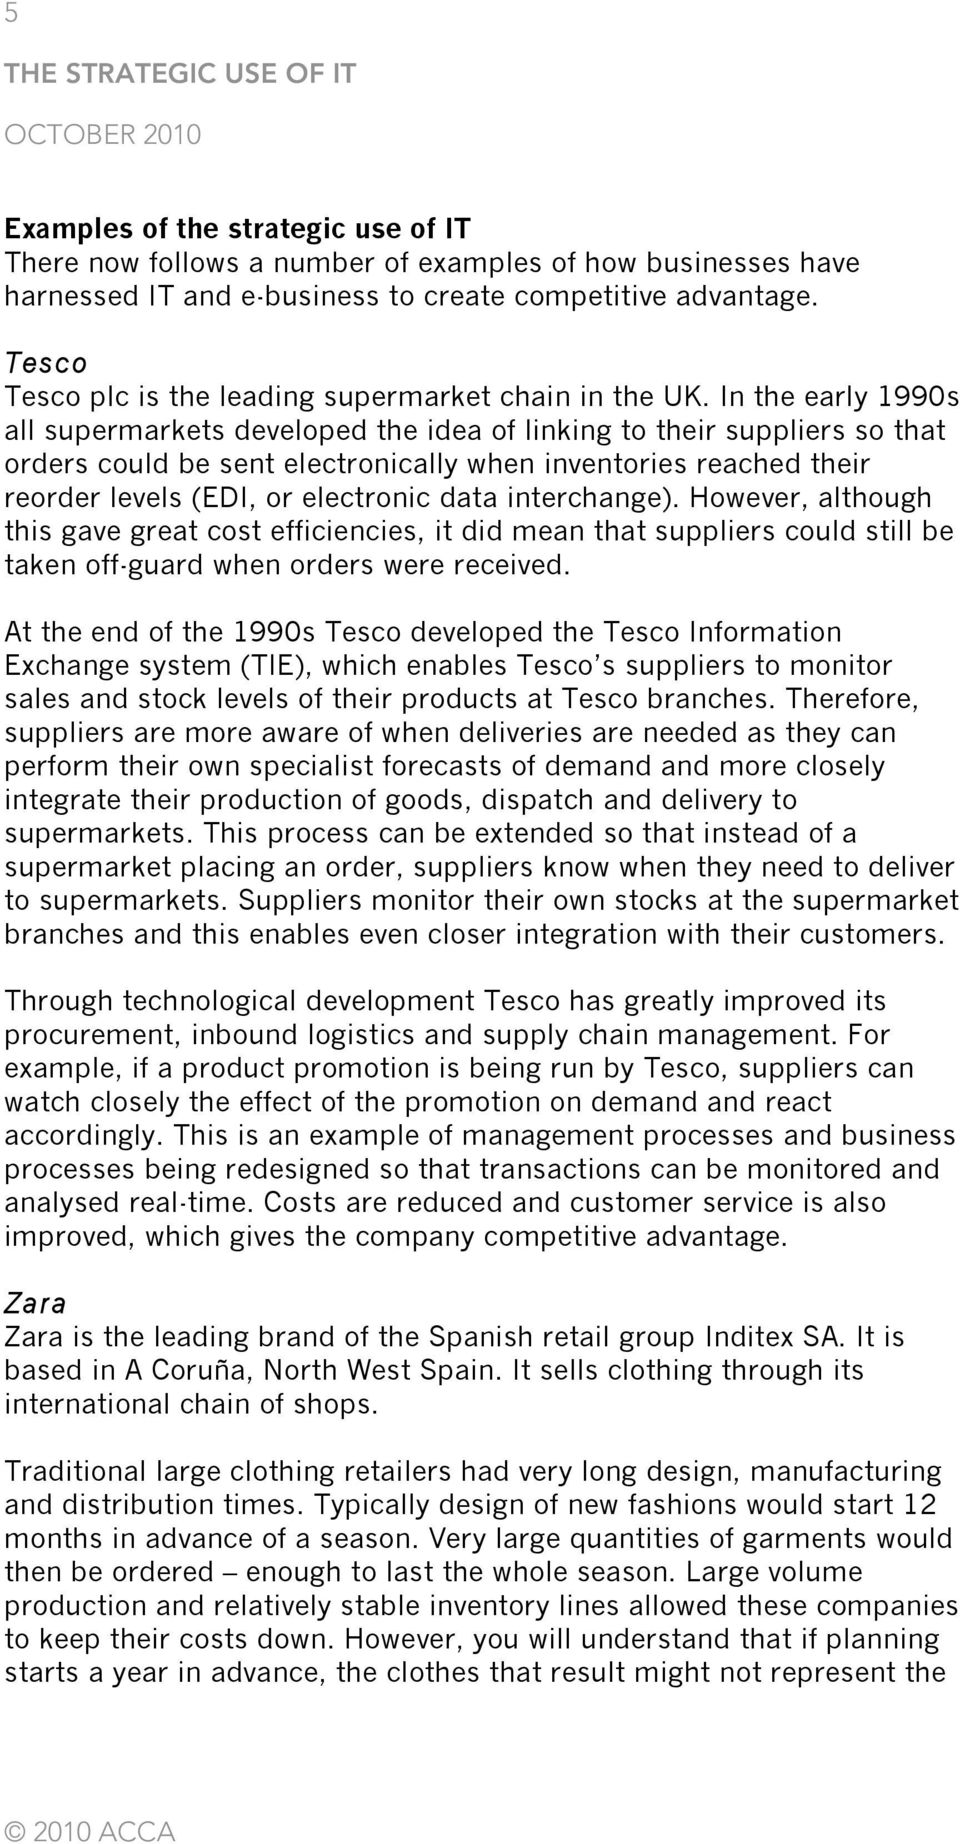 In the early 1990s all supermarkets developed the idea of linking to their suppliers so that orders could be sent electronically when inventories reached their reorder levels (EDI, or electronic data